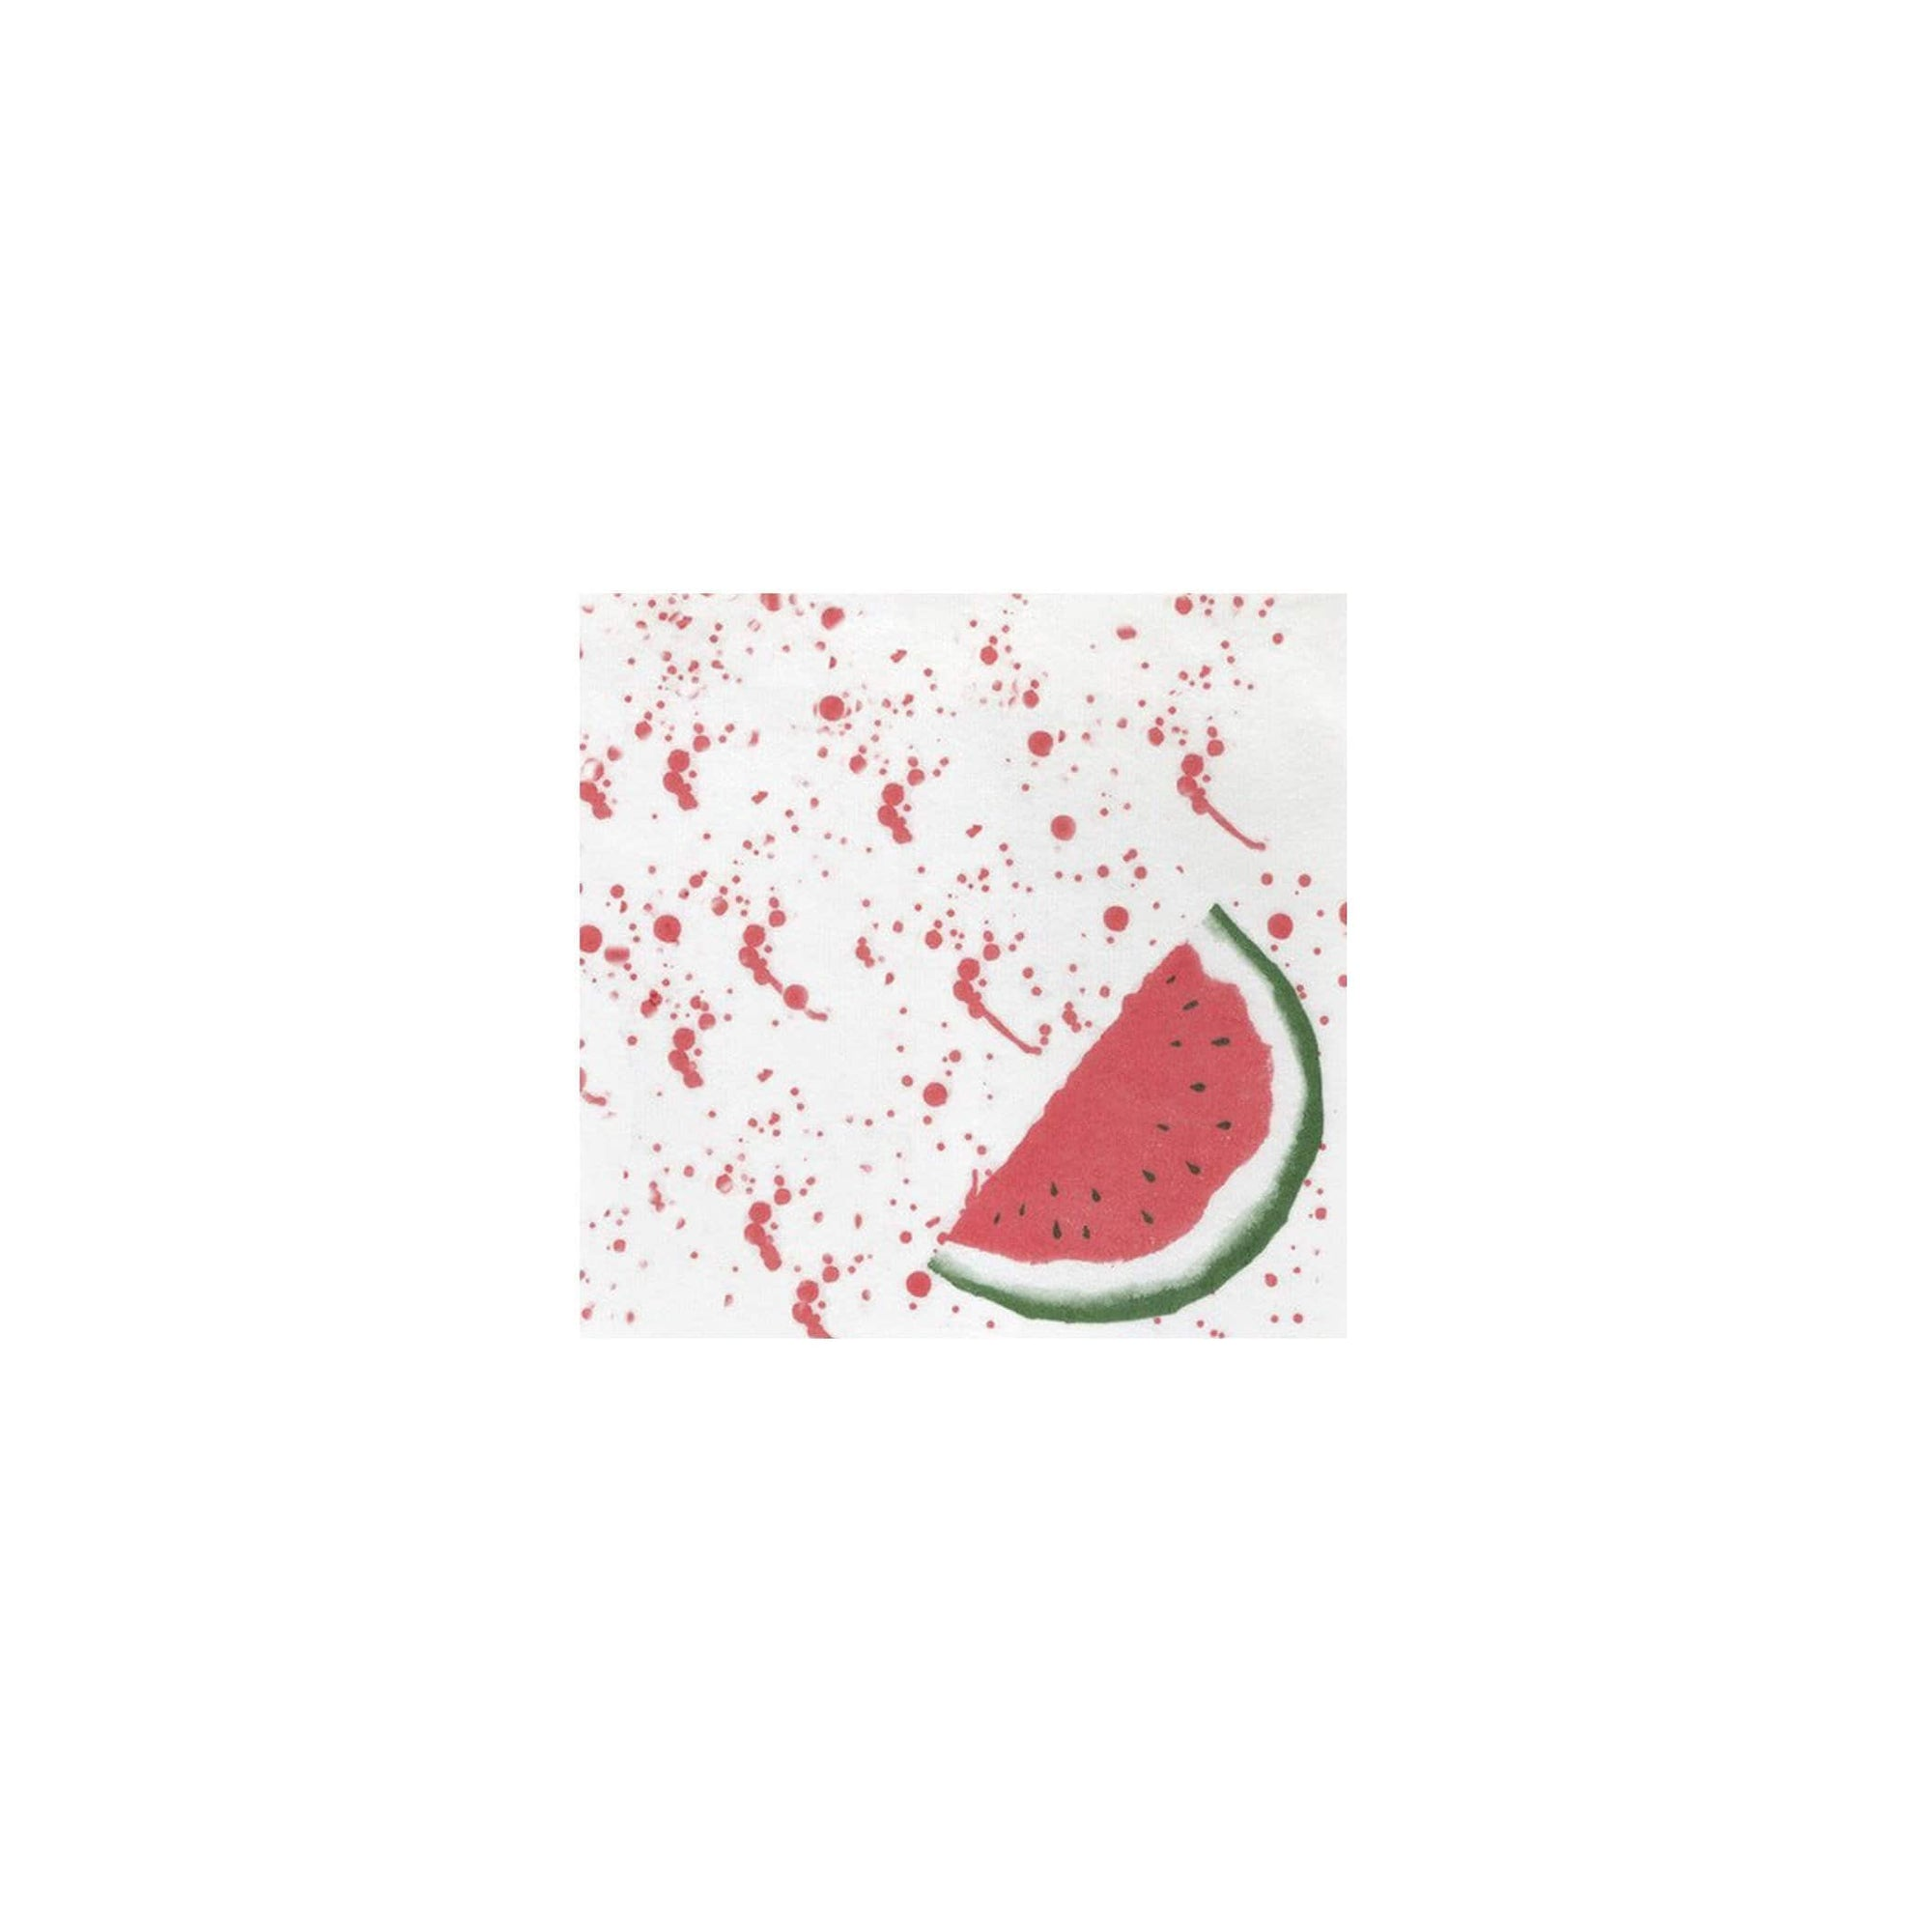 Vietri Vietri Papersoft Cocktail Napkins - Watermelon Watermelon / Pack of 20 PPS-6051WA